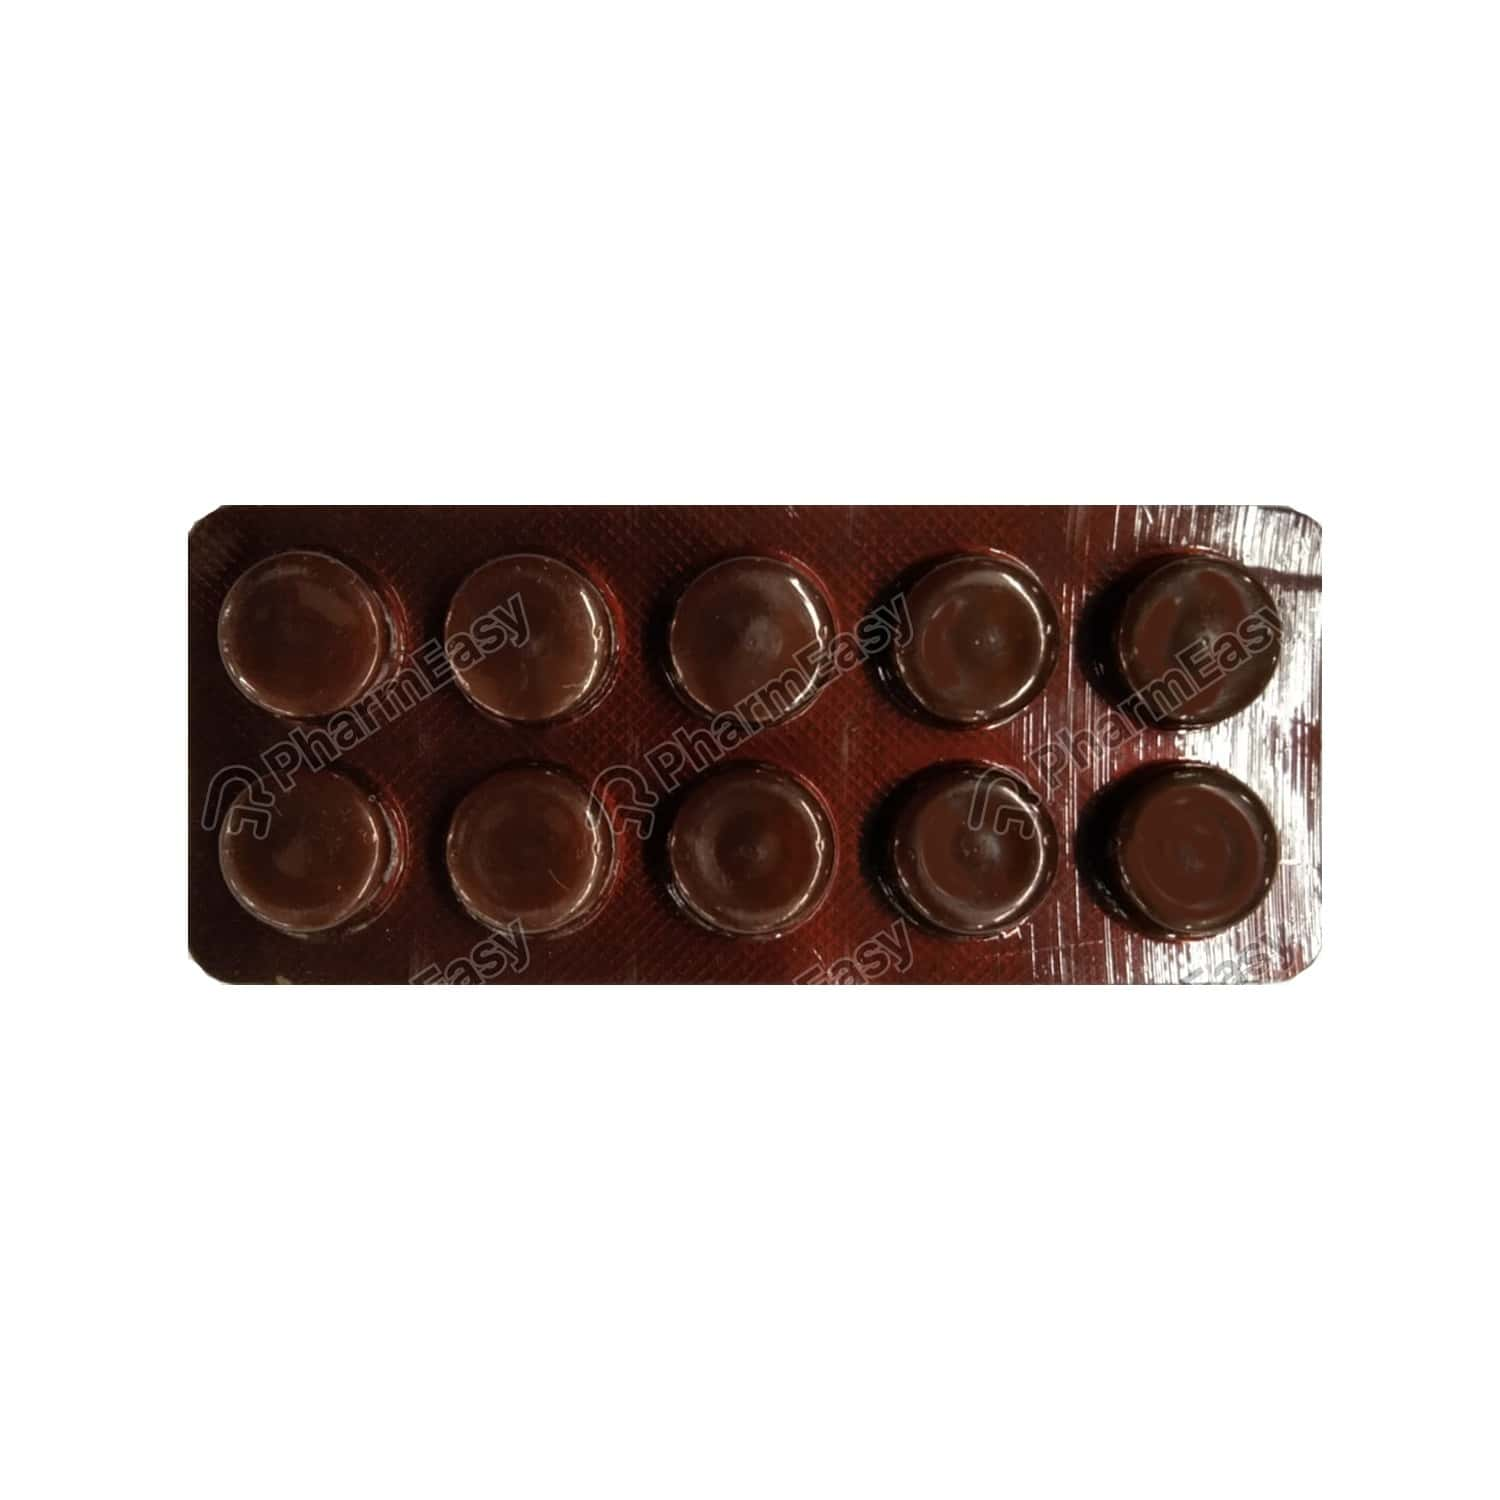 B 29 Daily Strip Of 10 Tablets